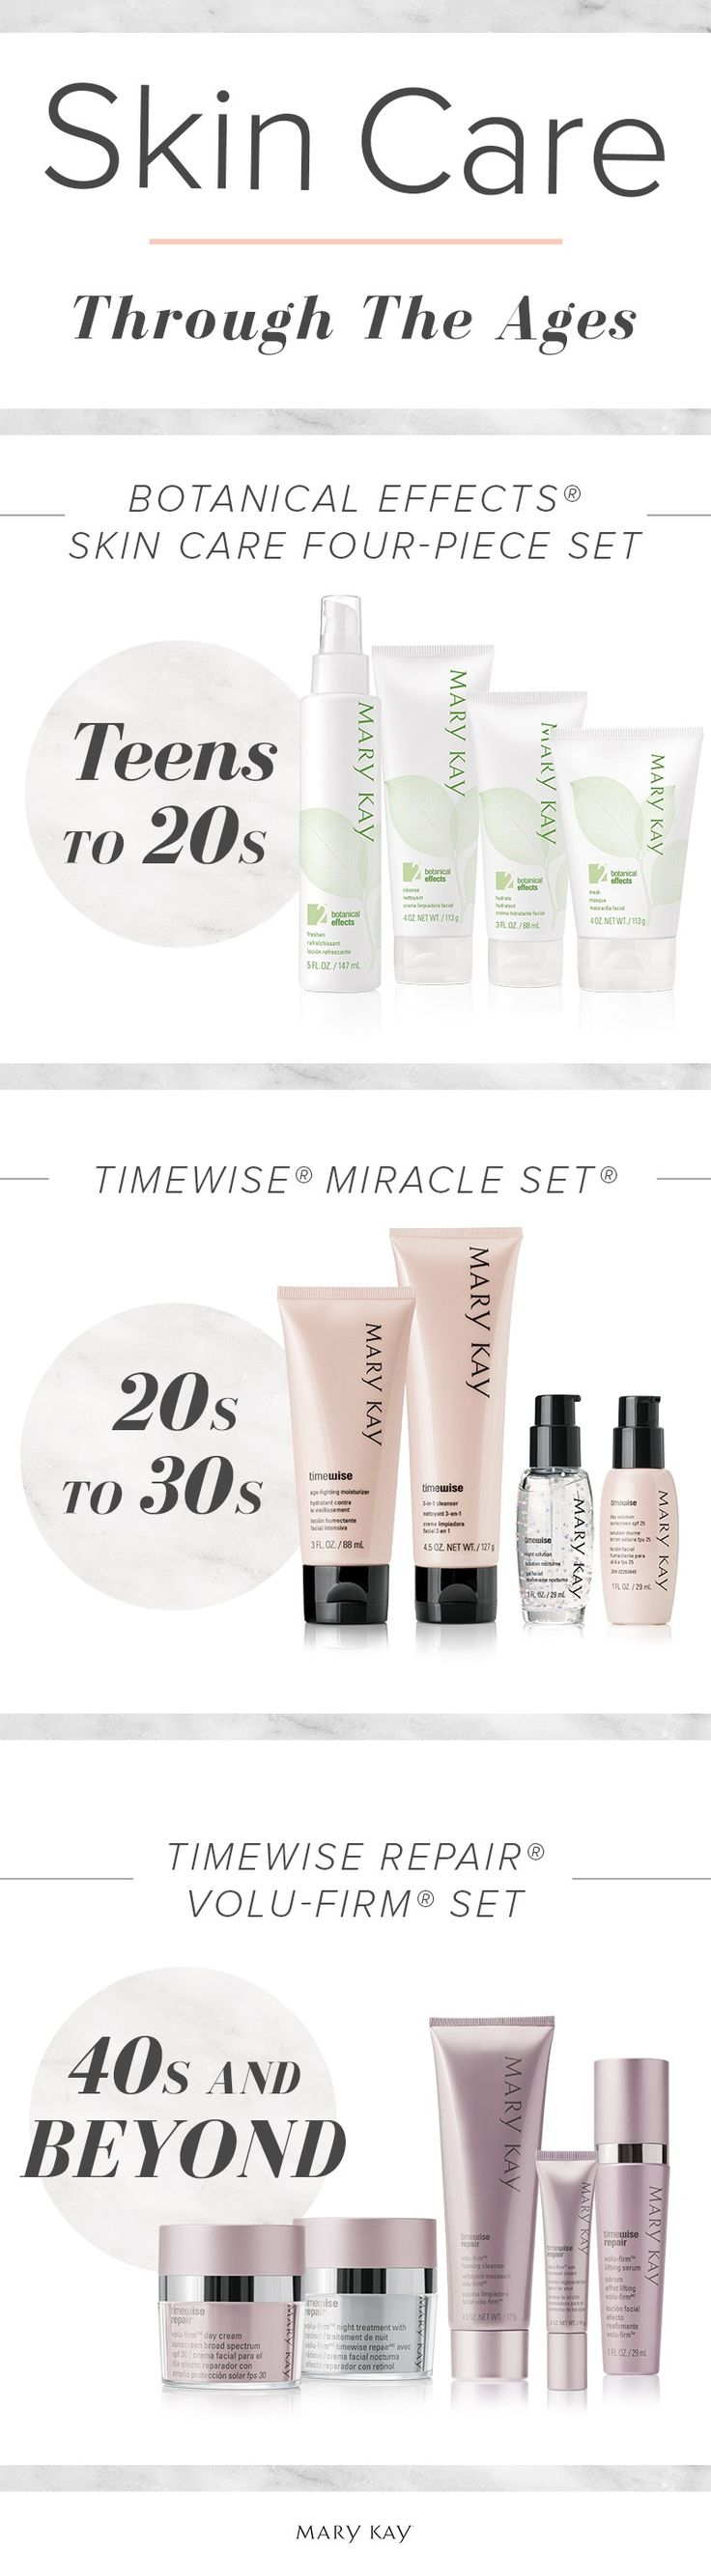 Mary kay online agreement on intouch -  Changes Throughout Your Life And So Should Your Skin Care Need Help Finding The Perfect Skin Care Regimen For Your Skin Type And Lifestyle A Mary Kay